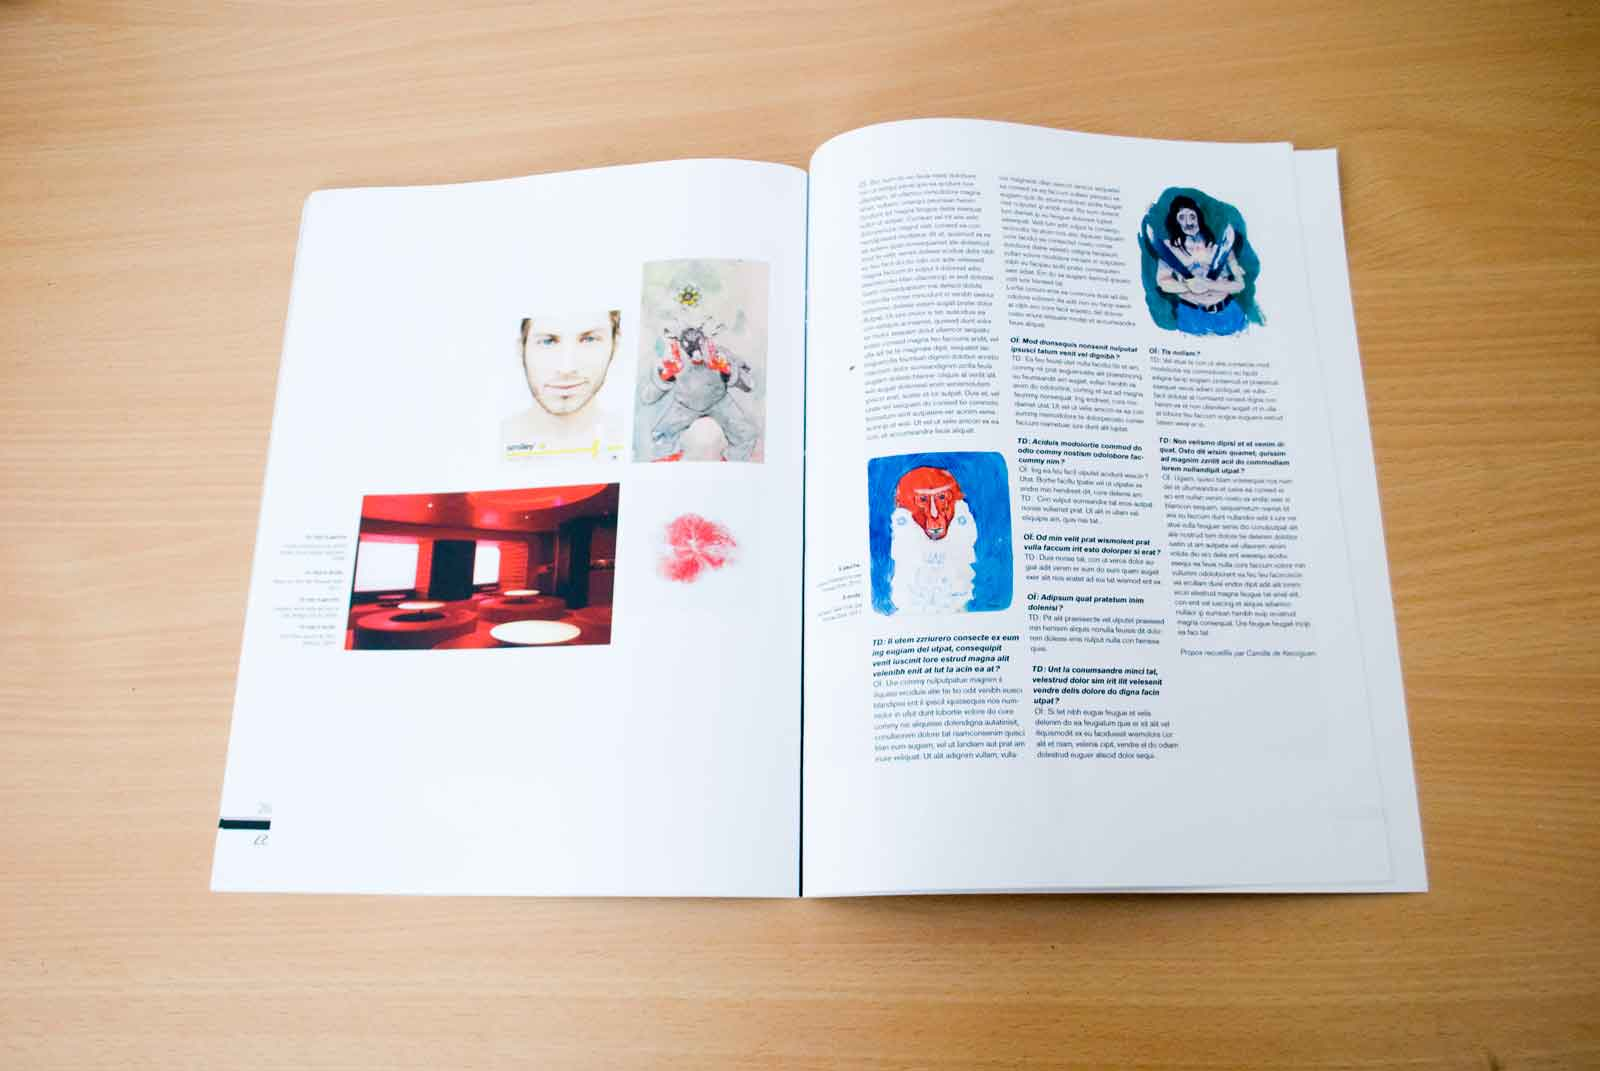 Slide 7/7 of my diploma subject about my graphic design influences, magazine layout for a fake publication entitled